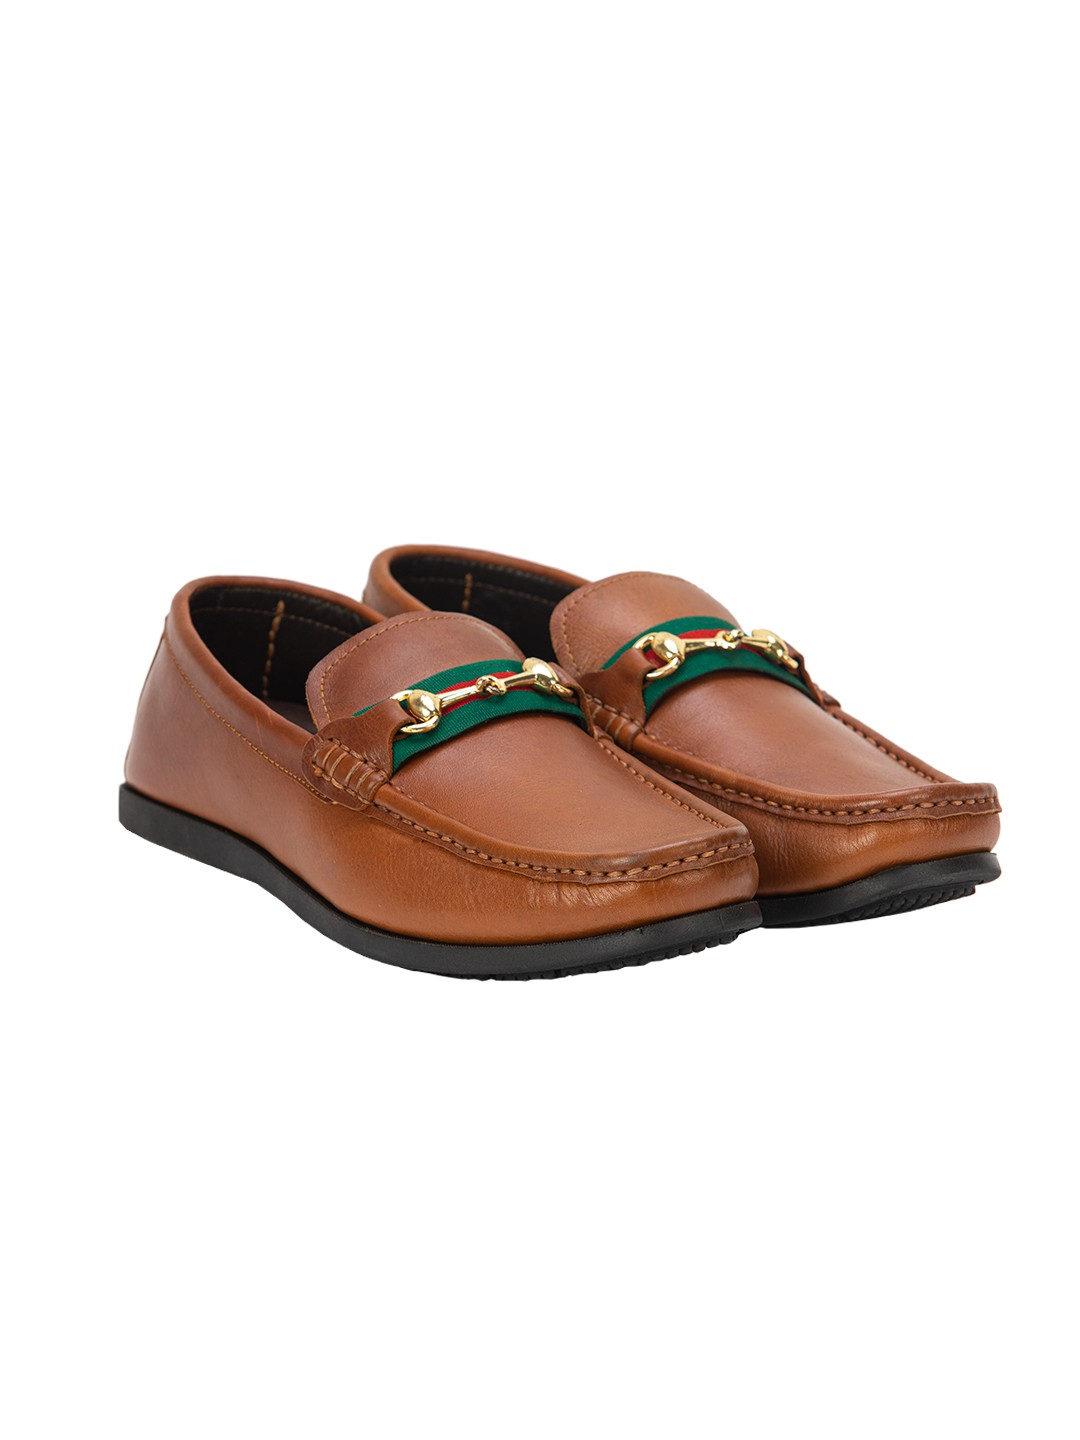 Buy Von Wellx Bryce Comfort Tan Loafer Online in Kandy